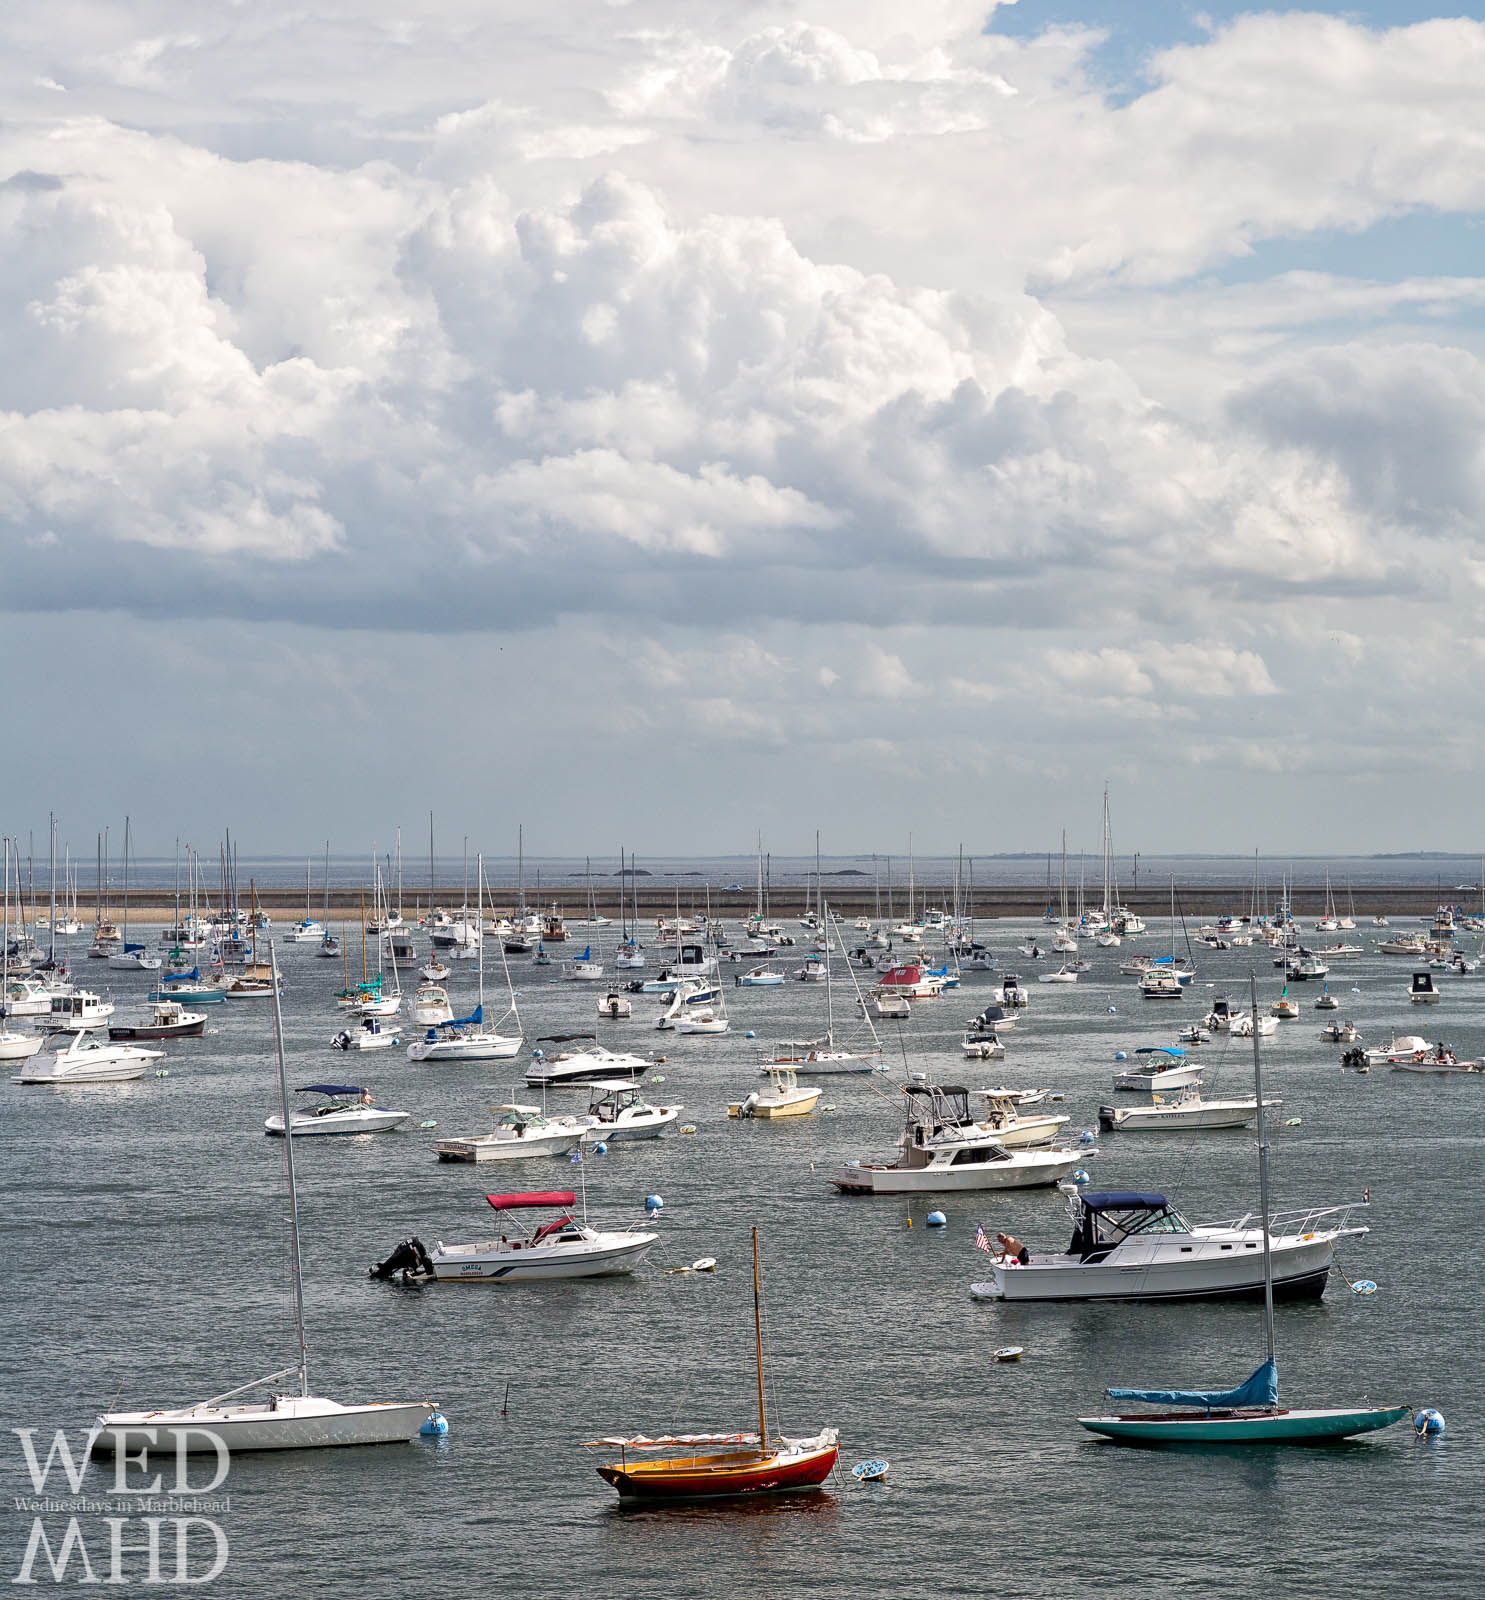 A view of boats morred in inner harbor looking out toward the causeway from Crocker Park in Marblehead